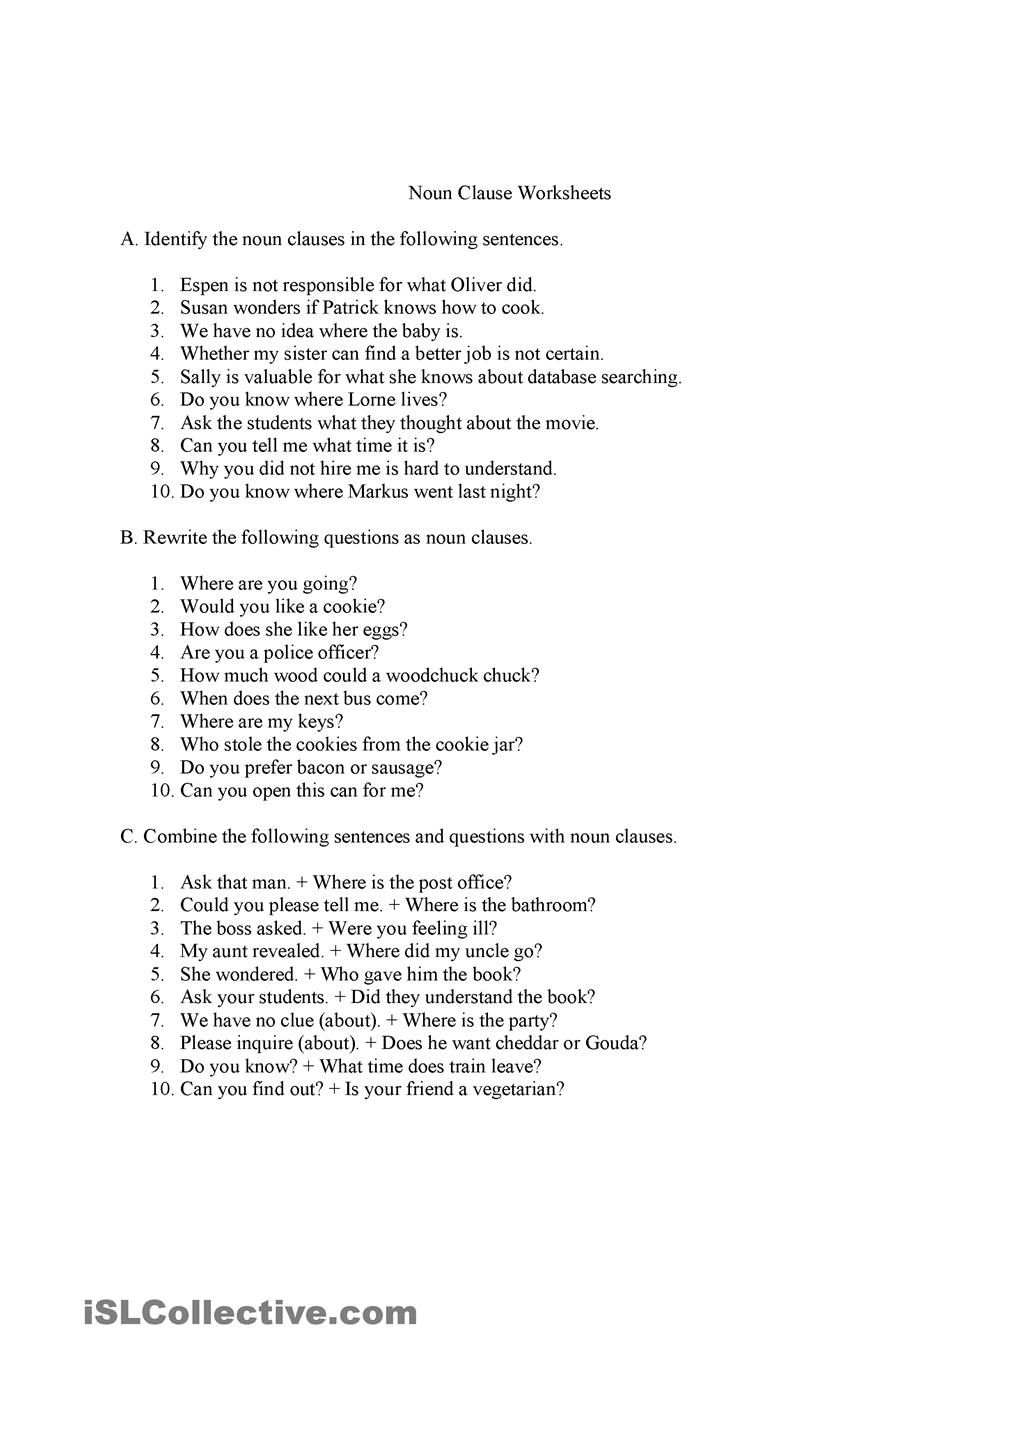 Noun Clauses Questions And Answers Relative Clauses Pinterest